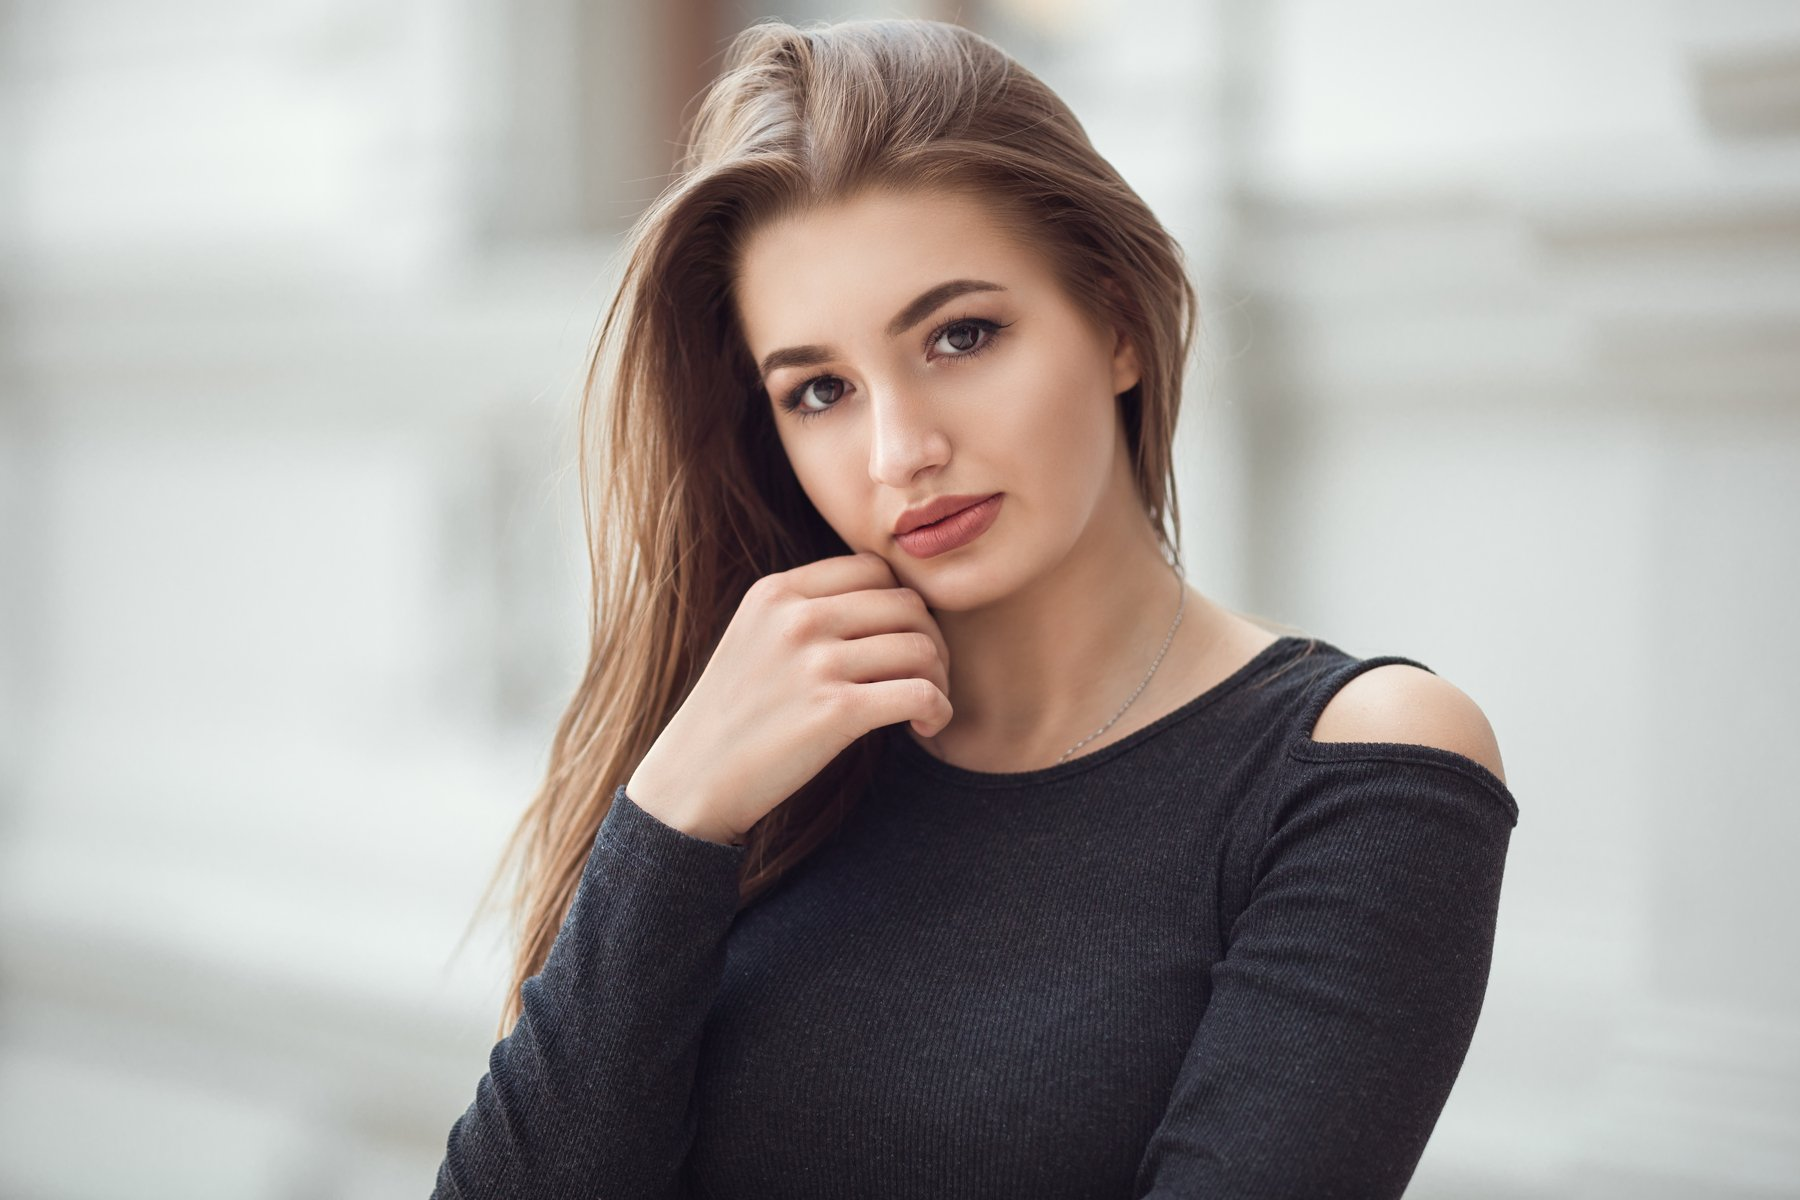 girl, model, beauty, eyes, romanian, girl, artist, art, people, fashion, color, retouch, canon, photography, outdoor, natural, light, 135mm, bokeh, spring, portrait, picture, bucharest, Andrei Marginean